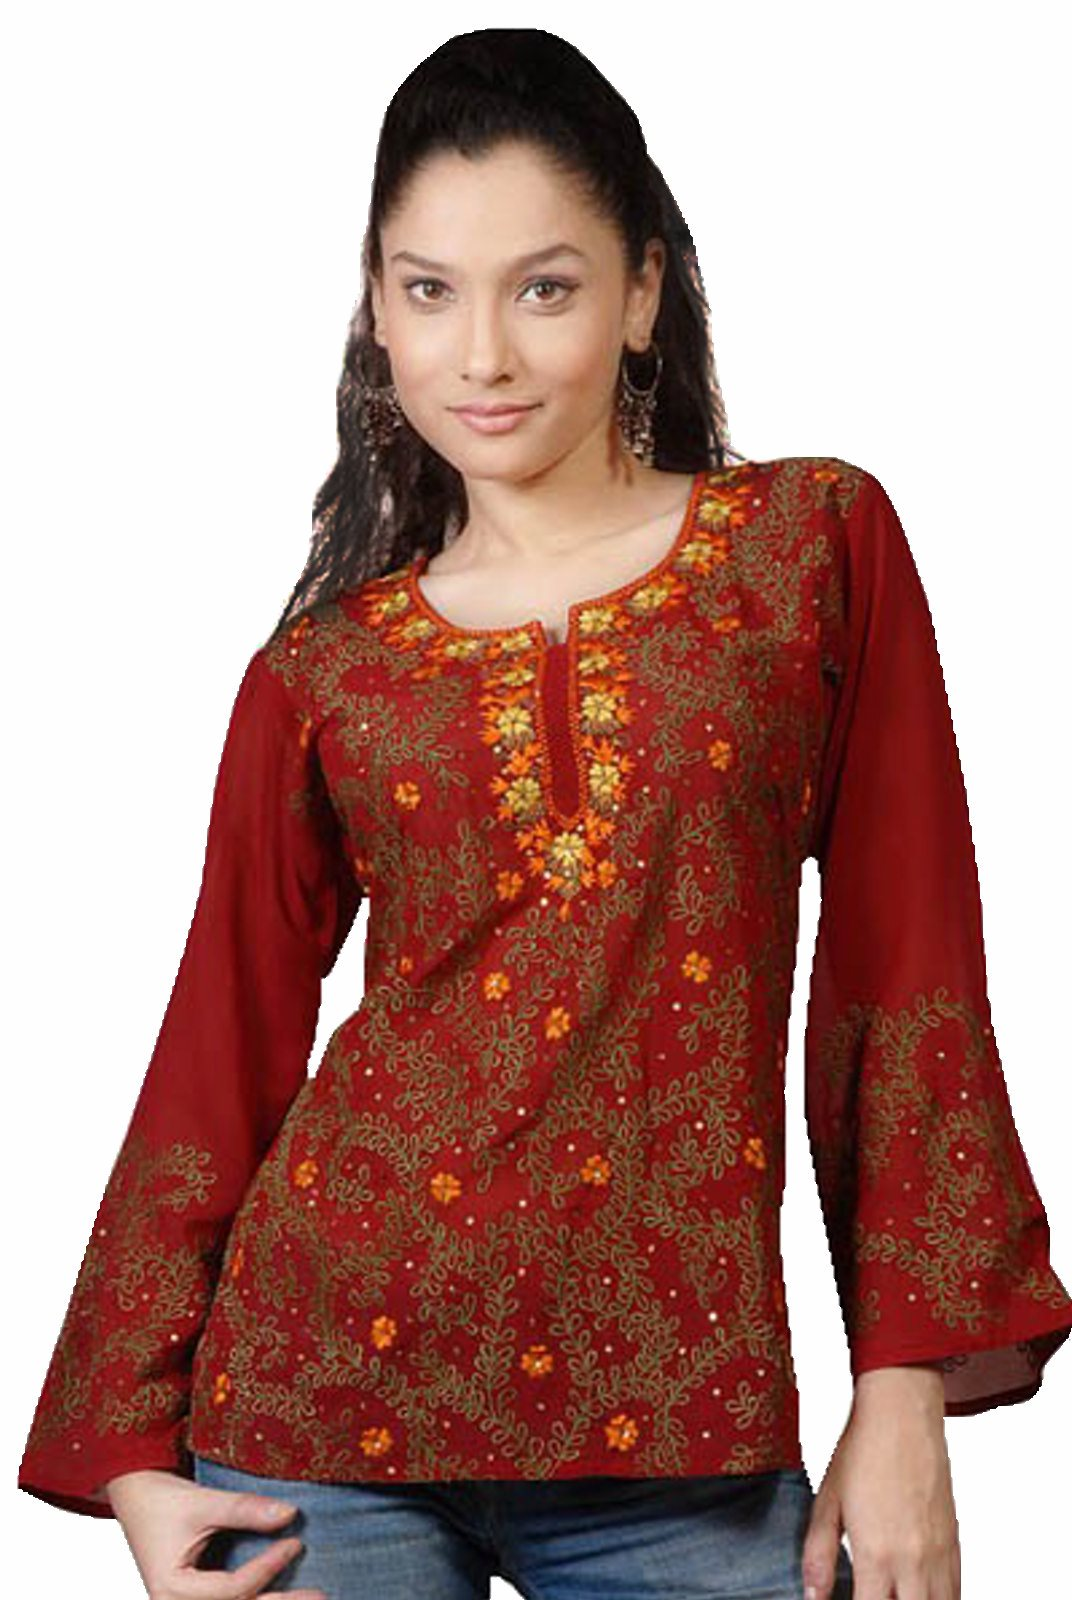 Spicy Burgundy long sleeves Kurti/Tunic with neckline handwork